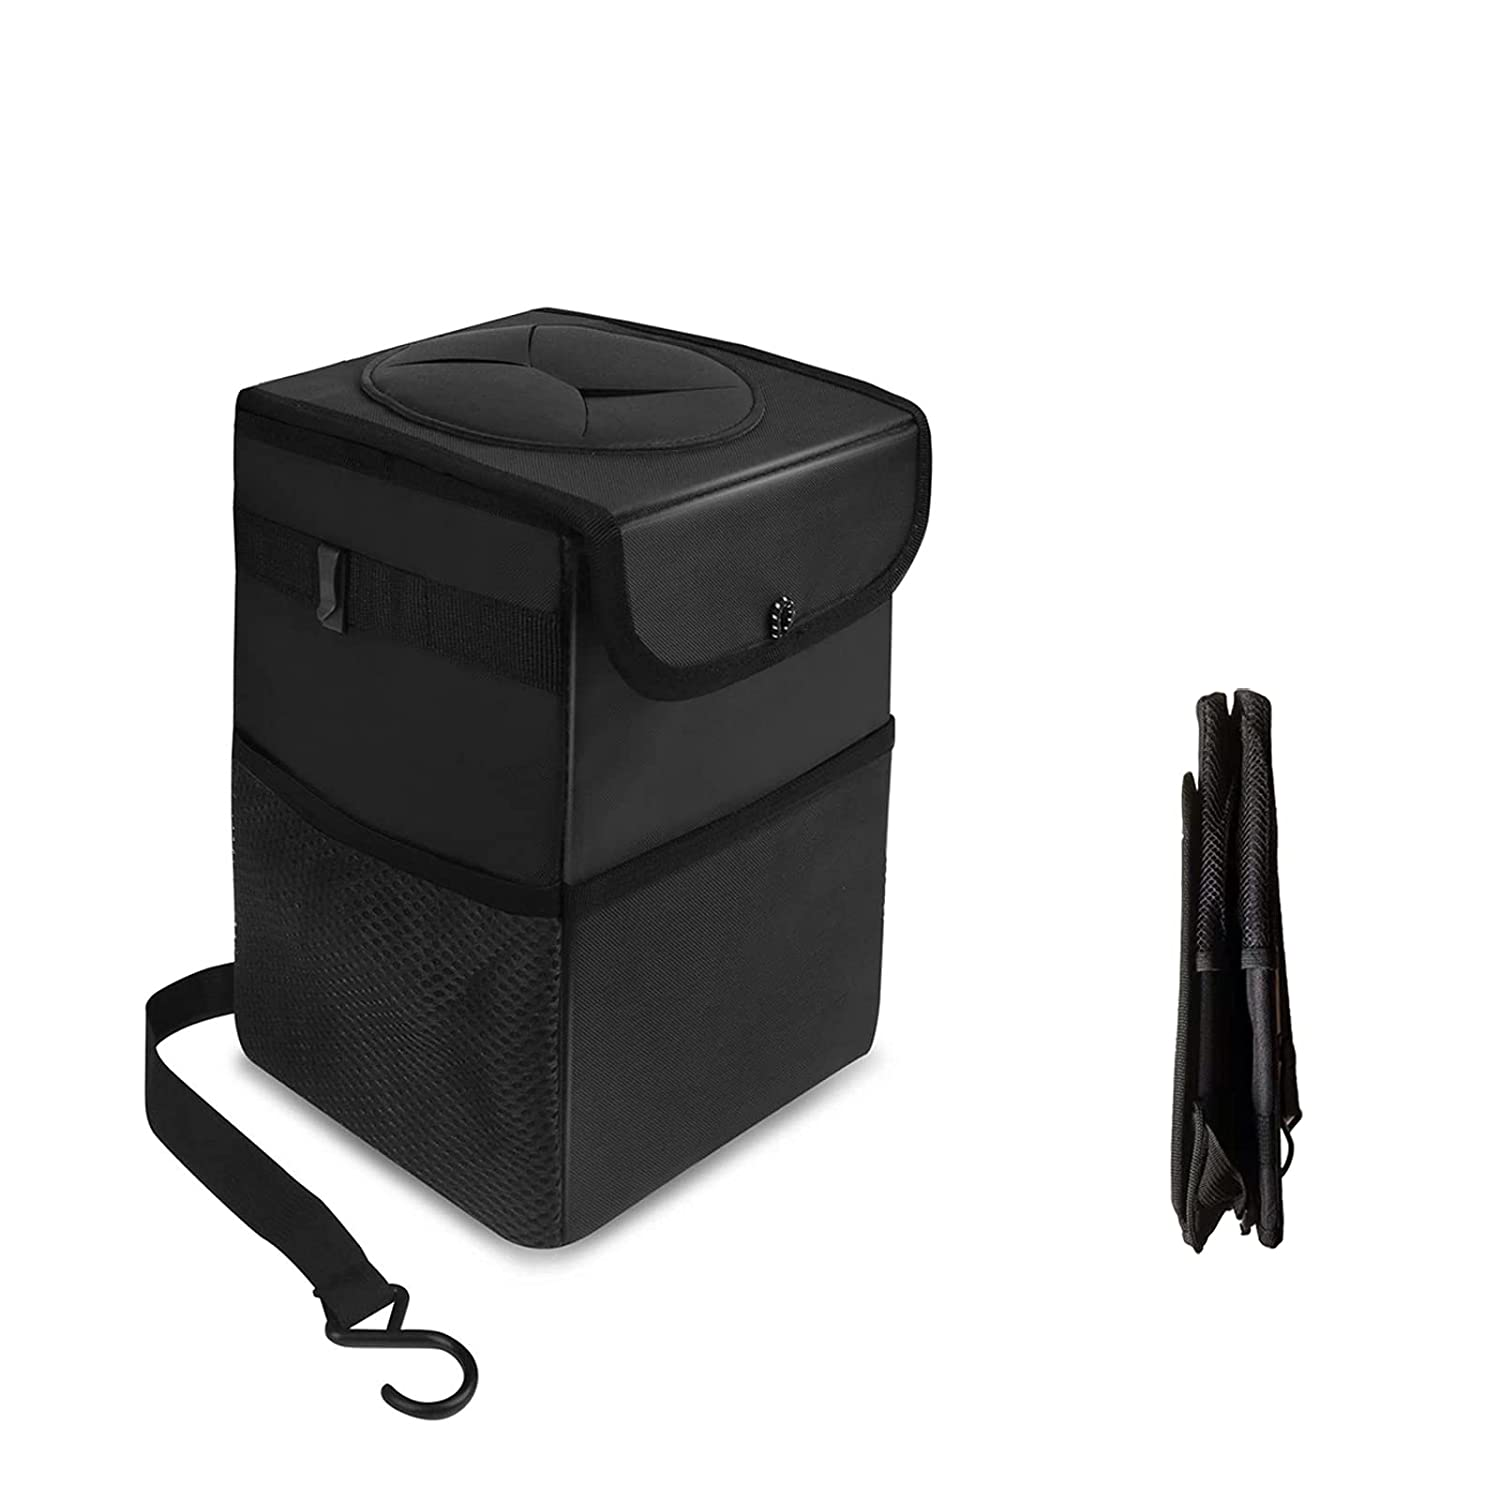 RIOBOW Car Trash Can with Lid Proof Challenge the lowest price of Japan ☆ and Storage Pockets Omaha Mall Leak